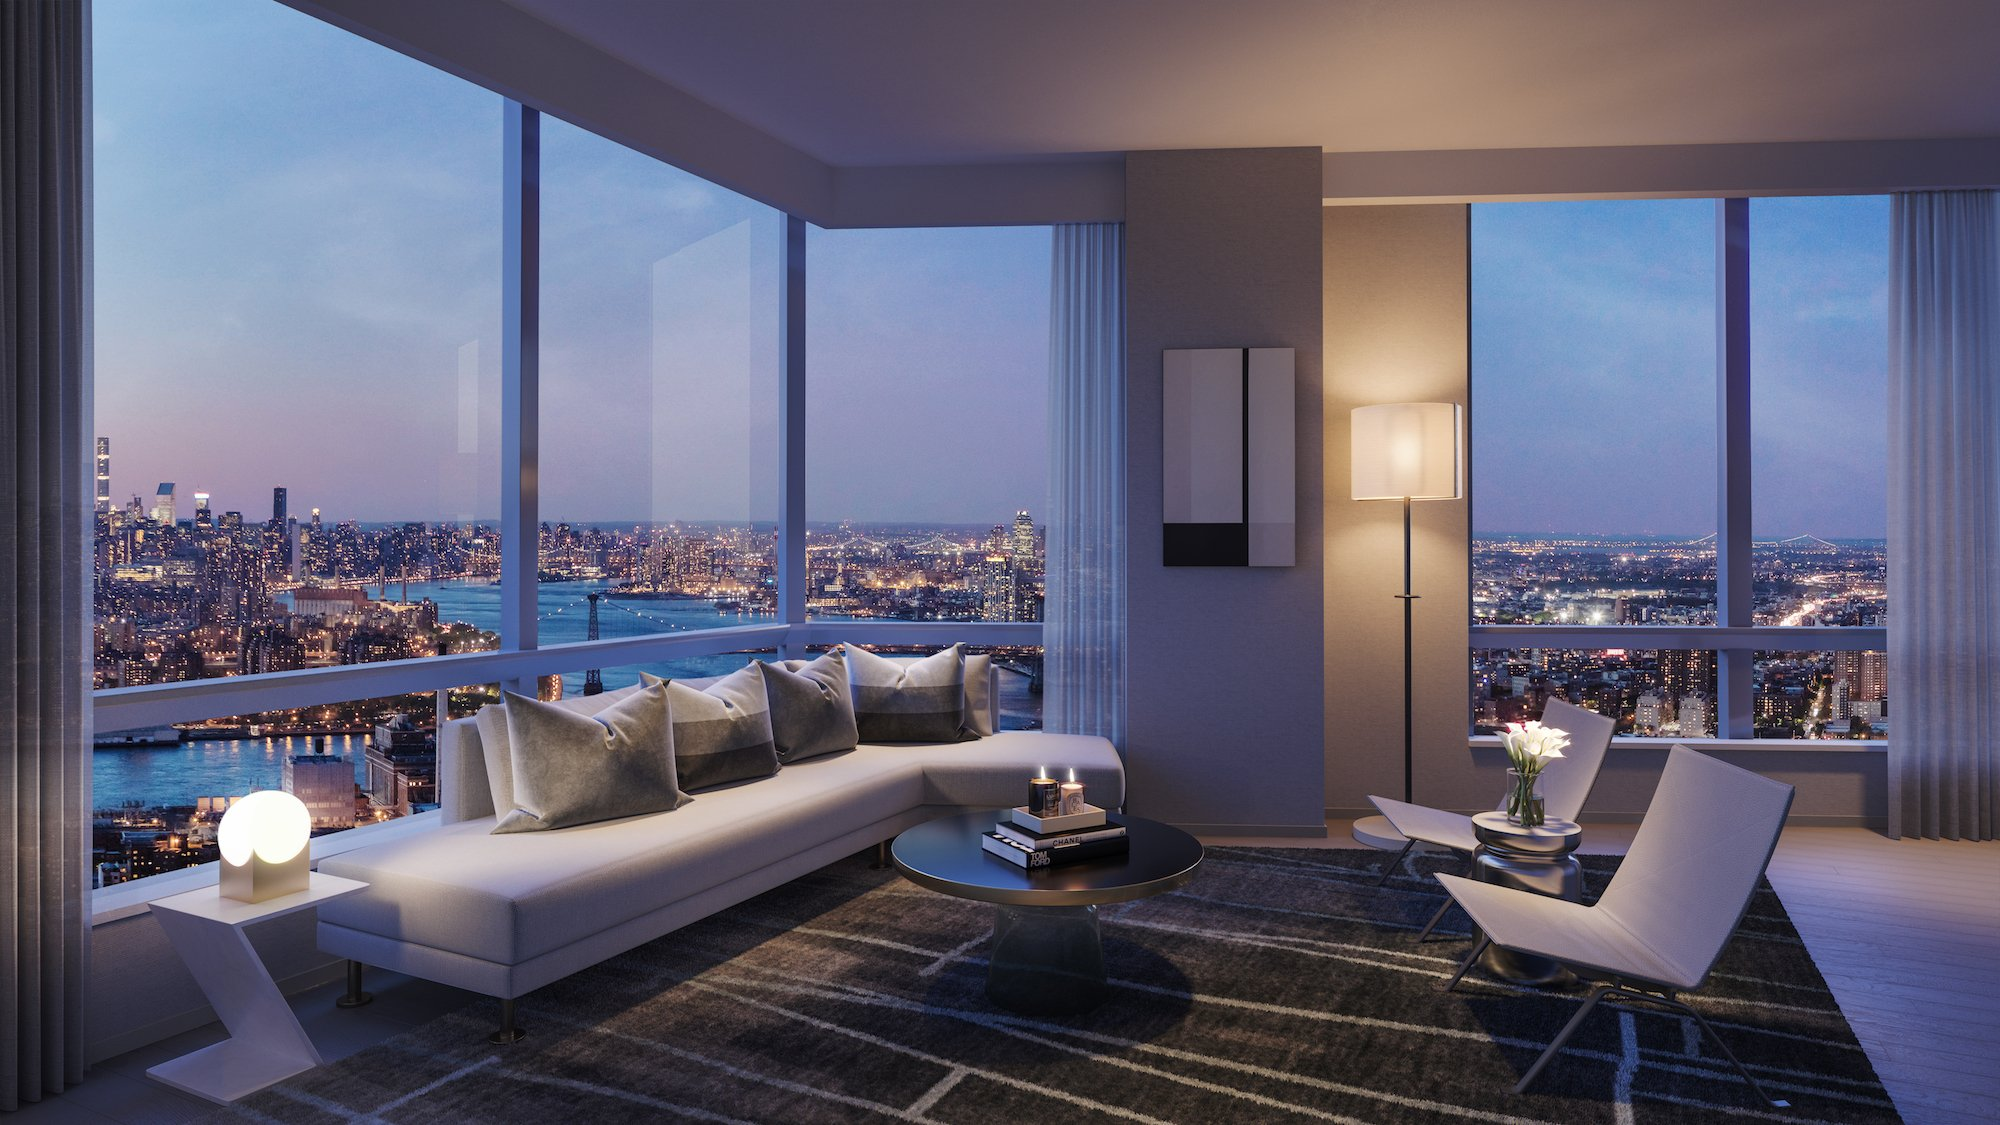 Brooklyn Point's $3 9M penthouse is the highest apartment ever in